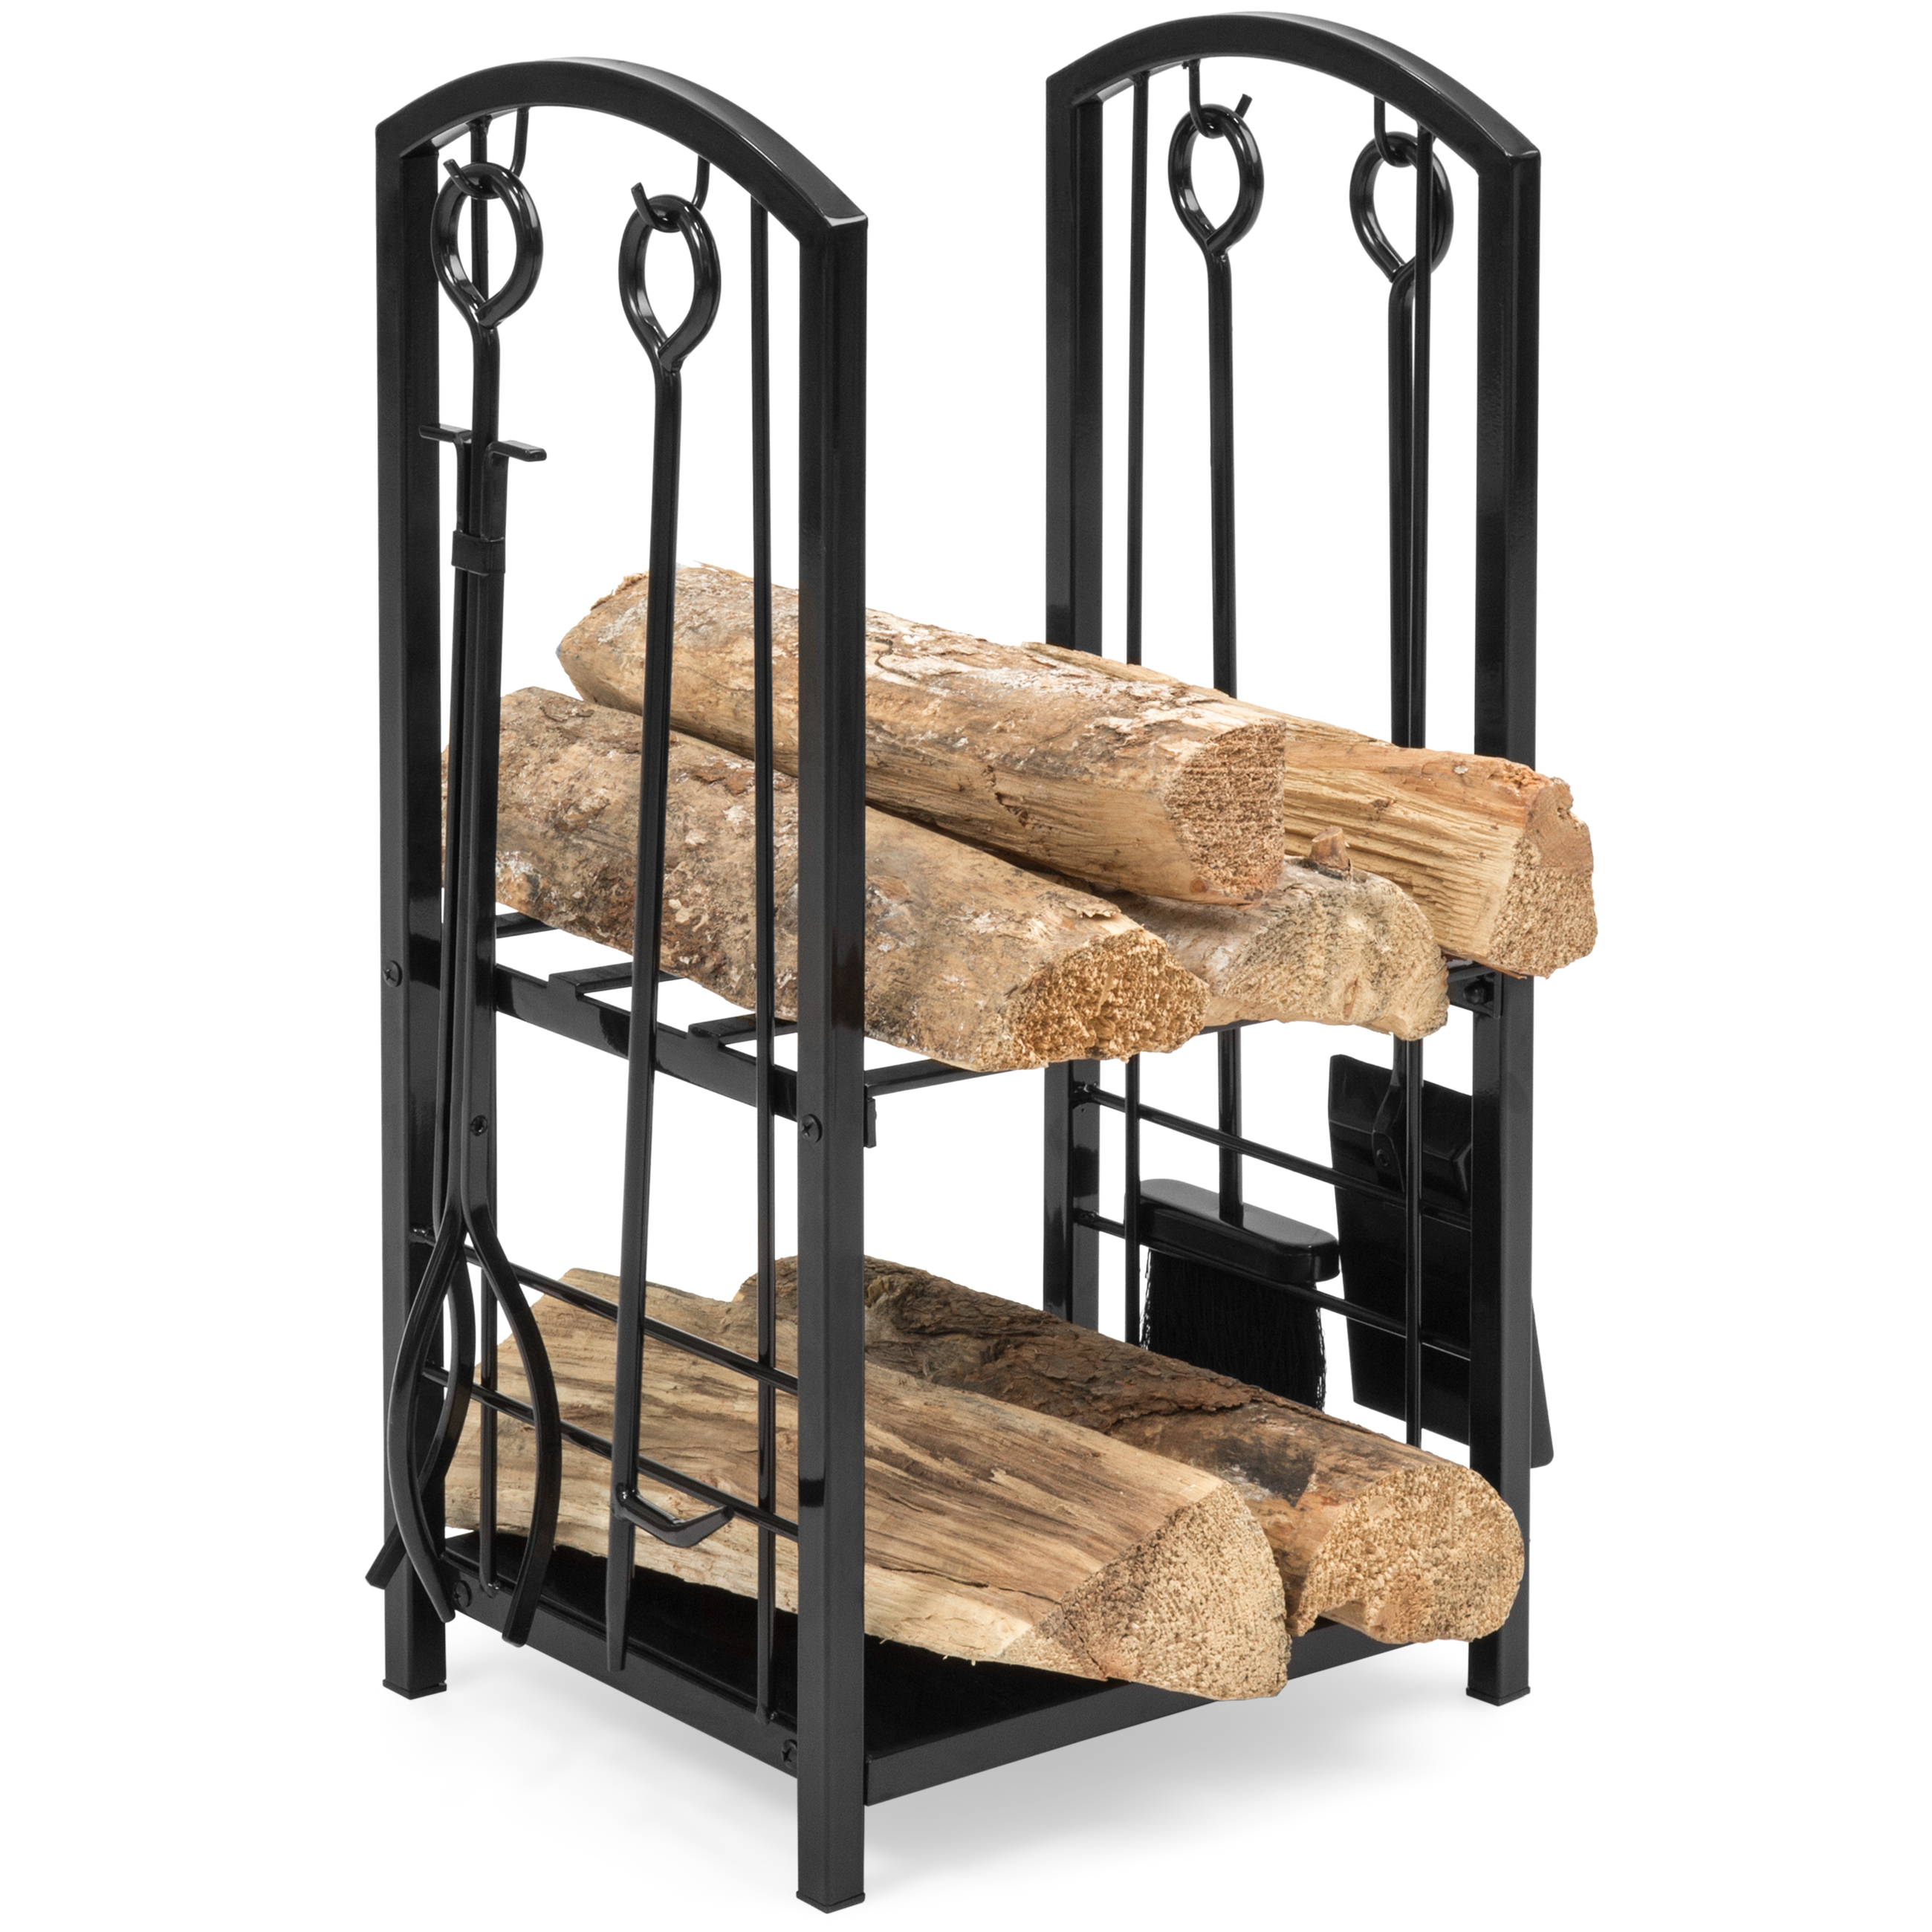 Best Choice Products Indoor Outdoor Fireplace Stackable Wrought Iron Firewood Log Rack Holder Storage Set w/ Hook, Broom, Shovel, Tong - Black